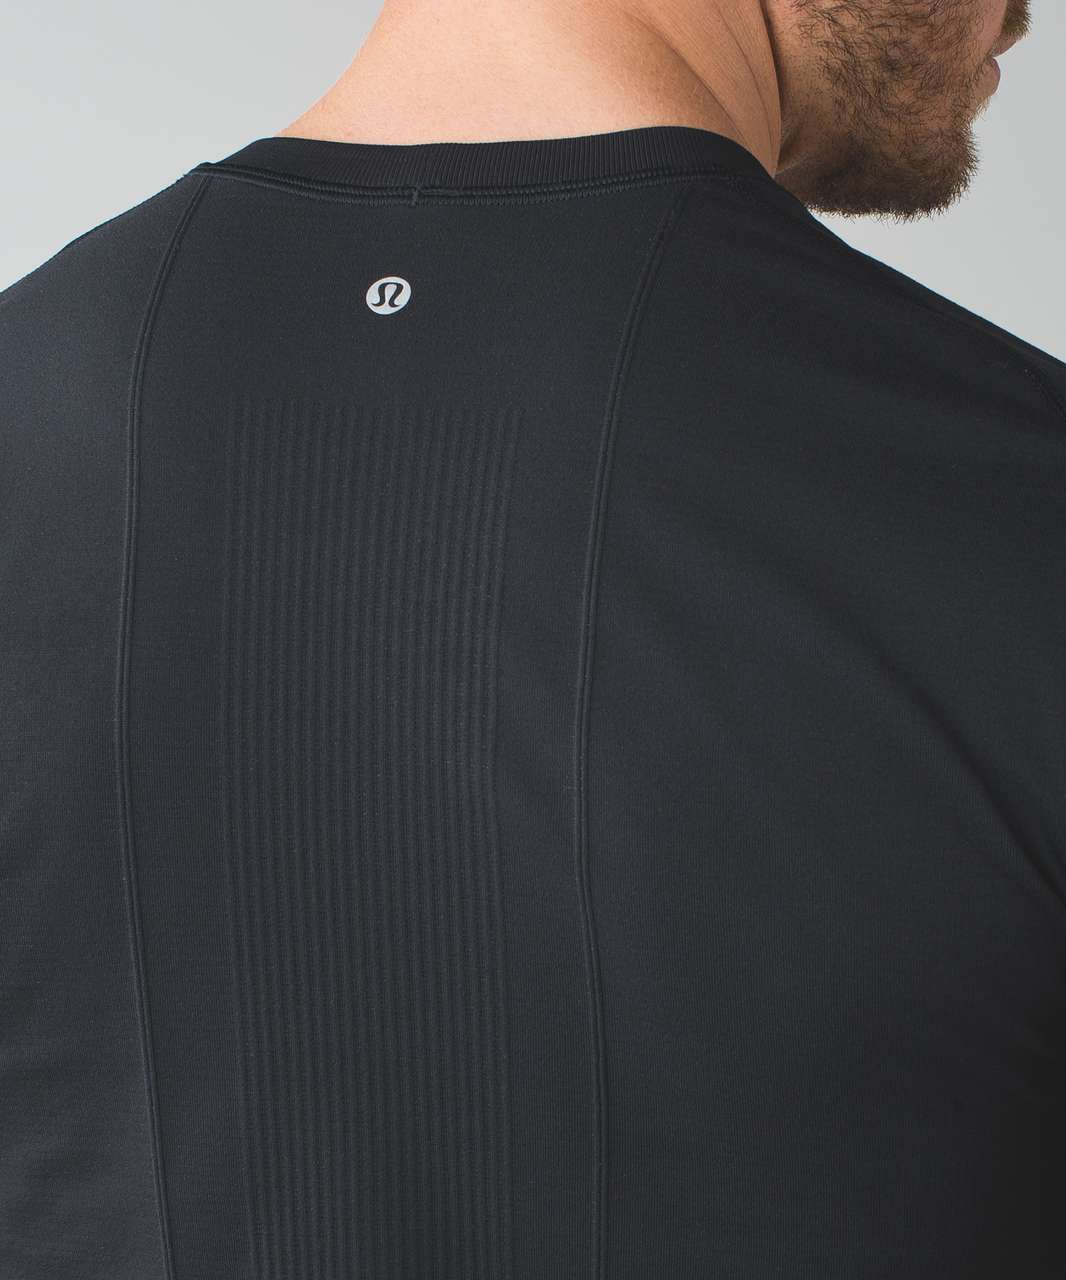 Lululemon Metal Vent Tech Thermal Crew - Black (First Release)